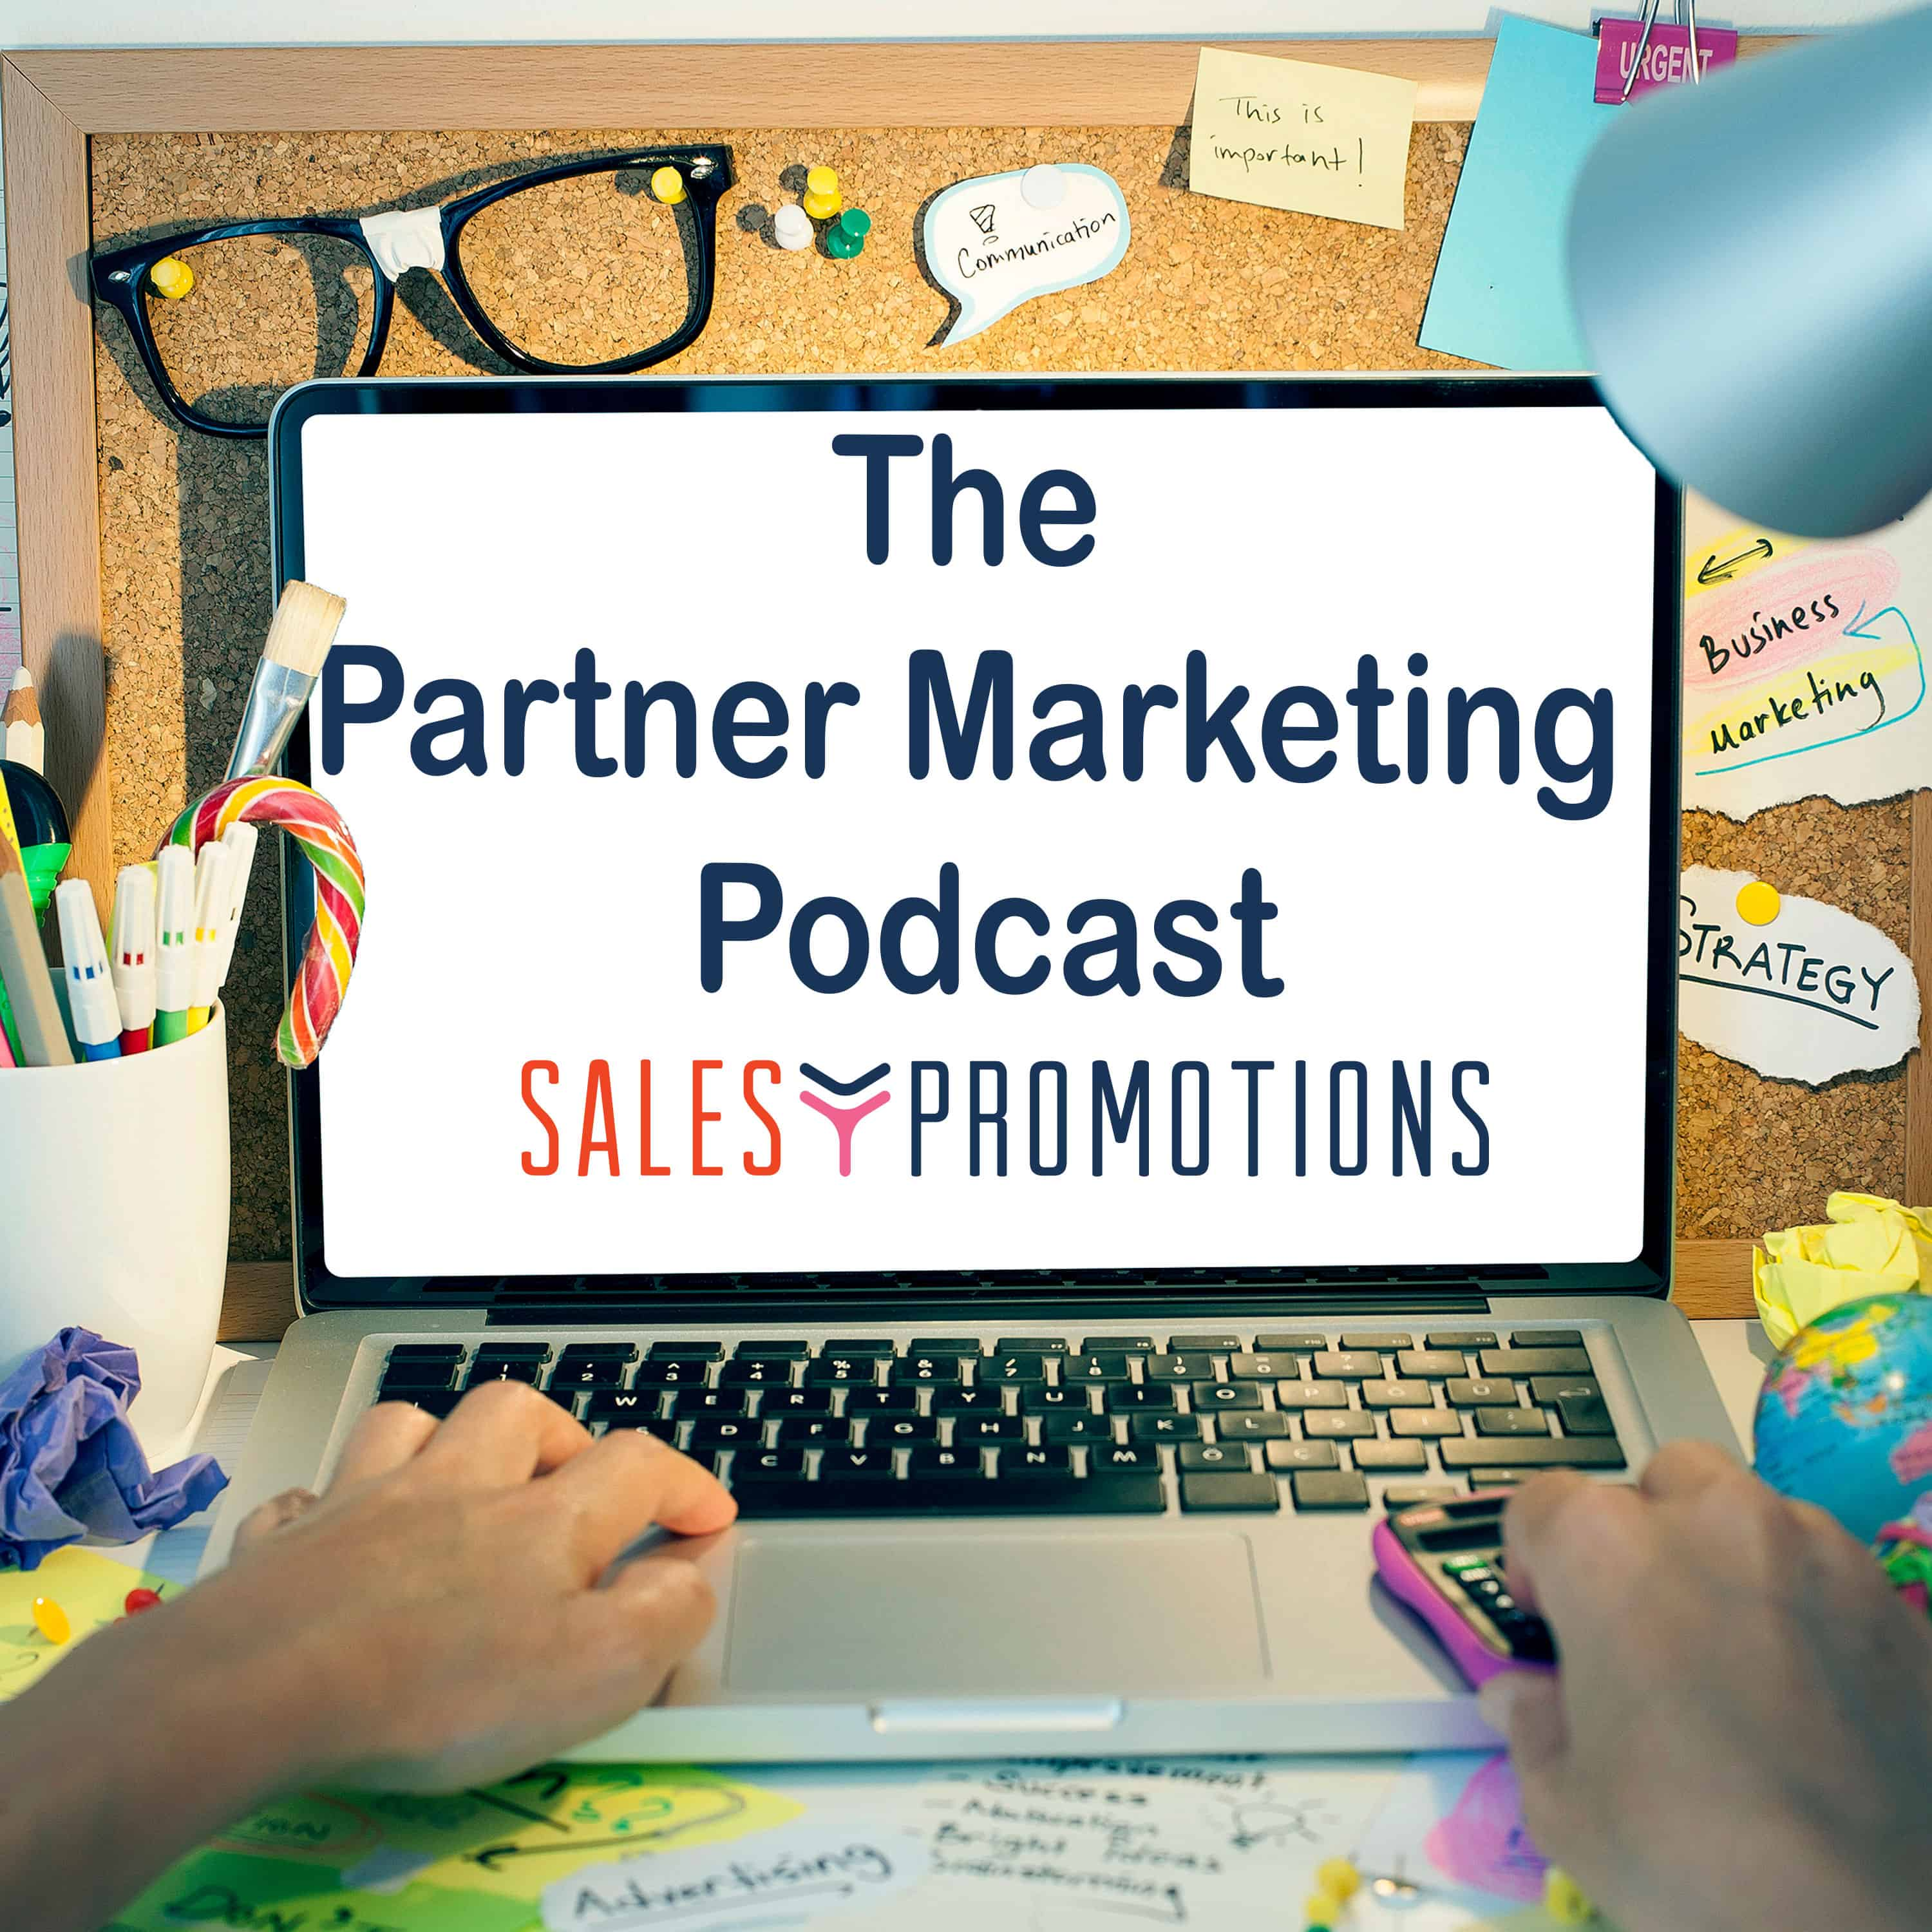 Partner Marketing Podcast | Sales Promotions.org